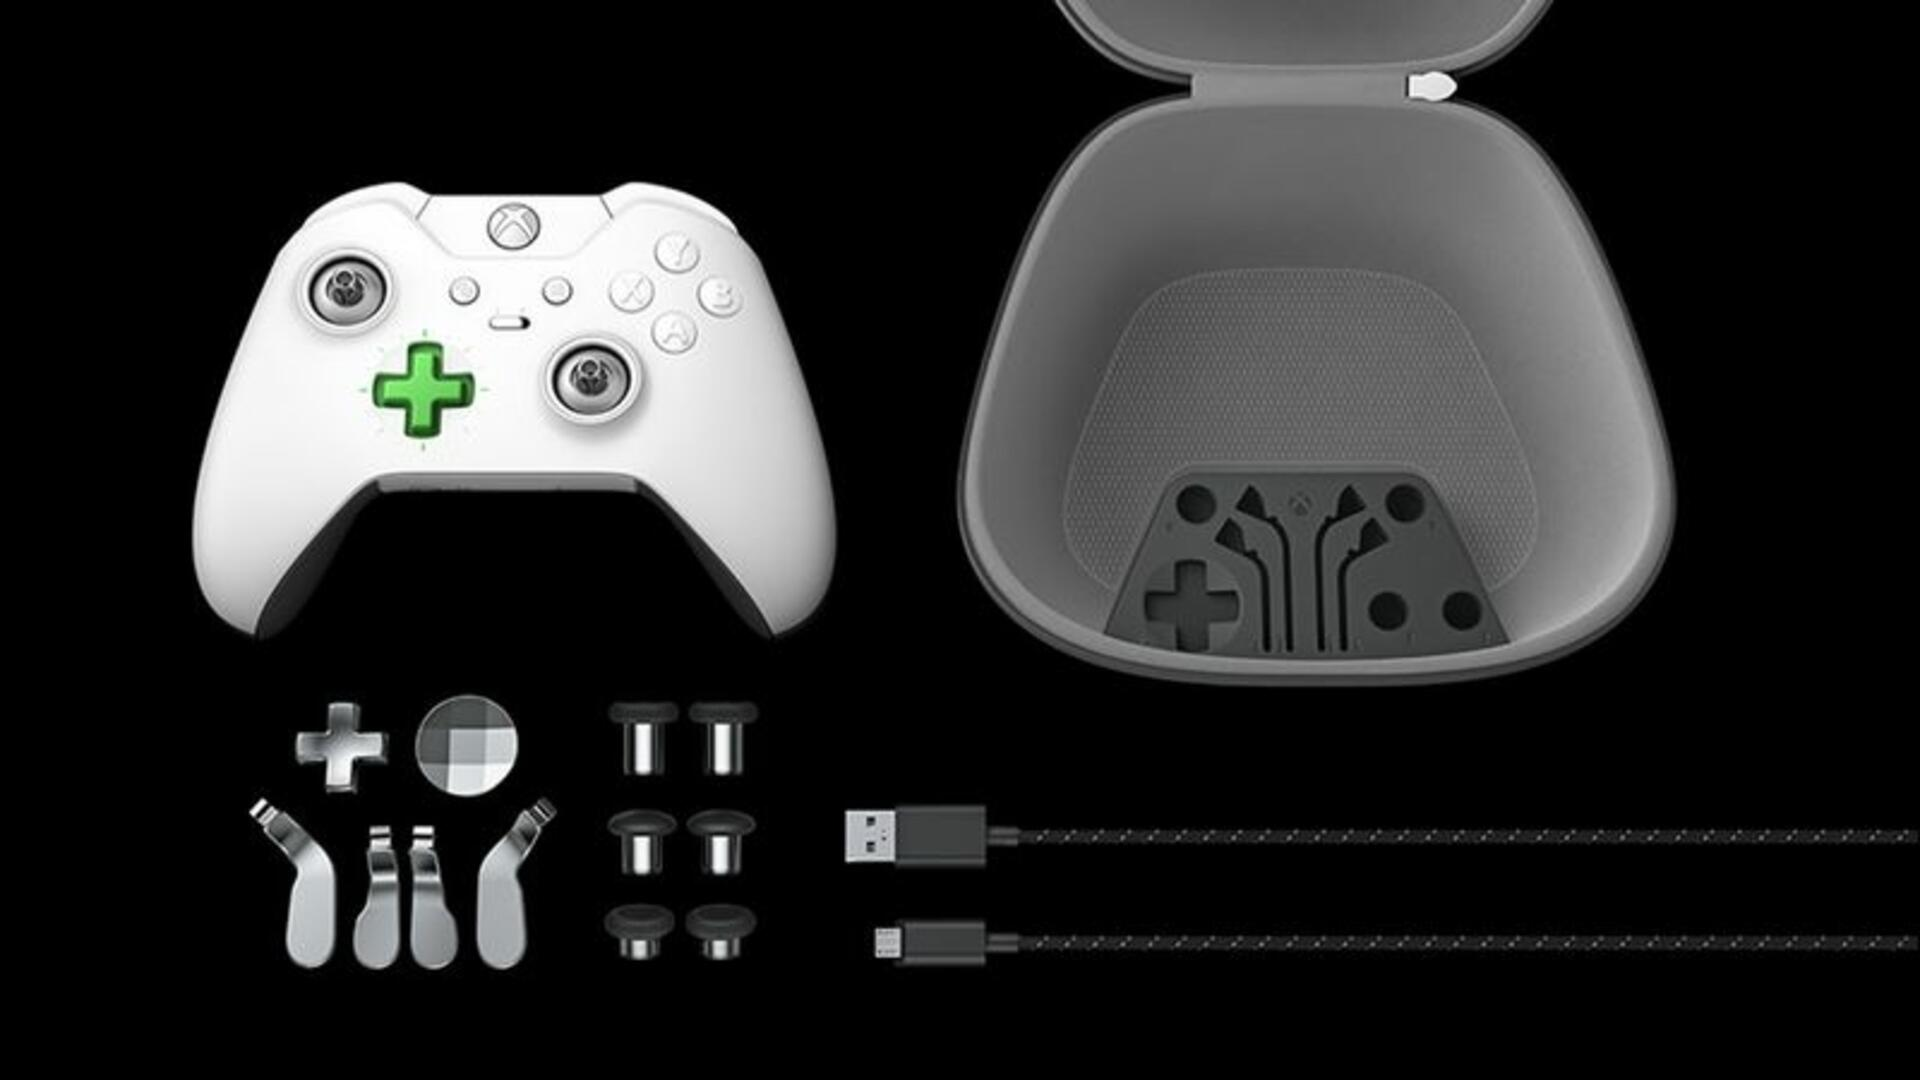 Special Edition White Xbox One Elite Controller - Pre Order, Release Date, Features, Price - Everything we Know